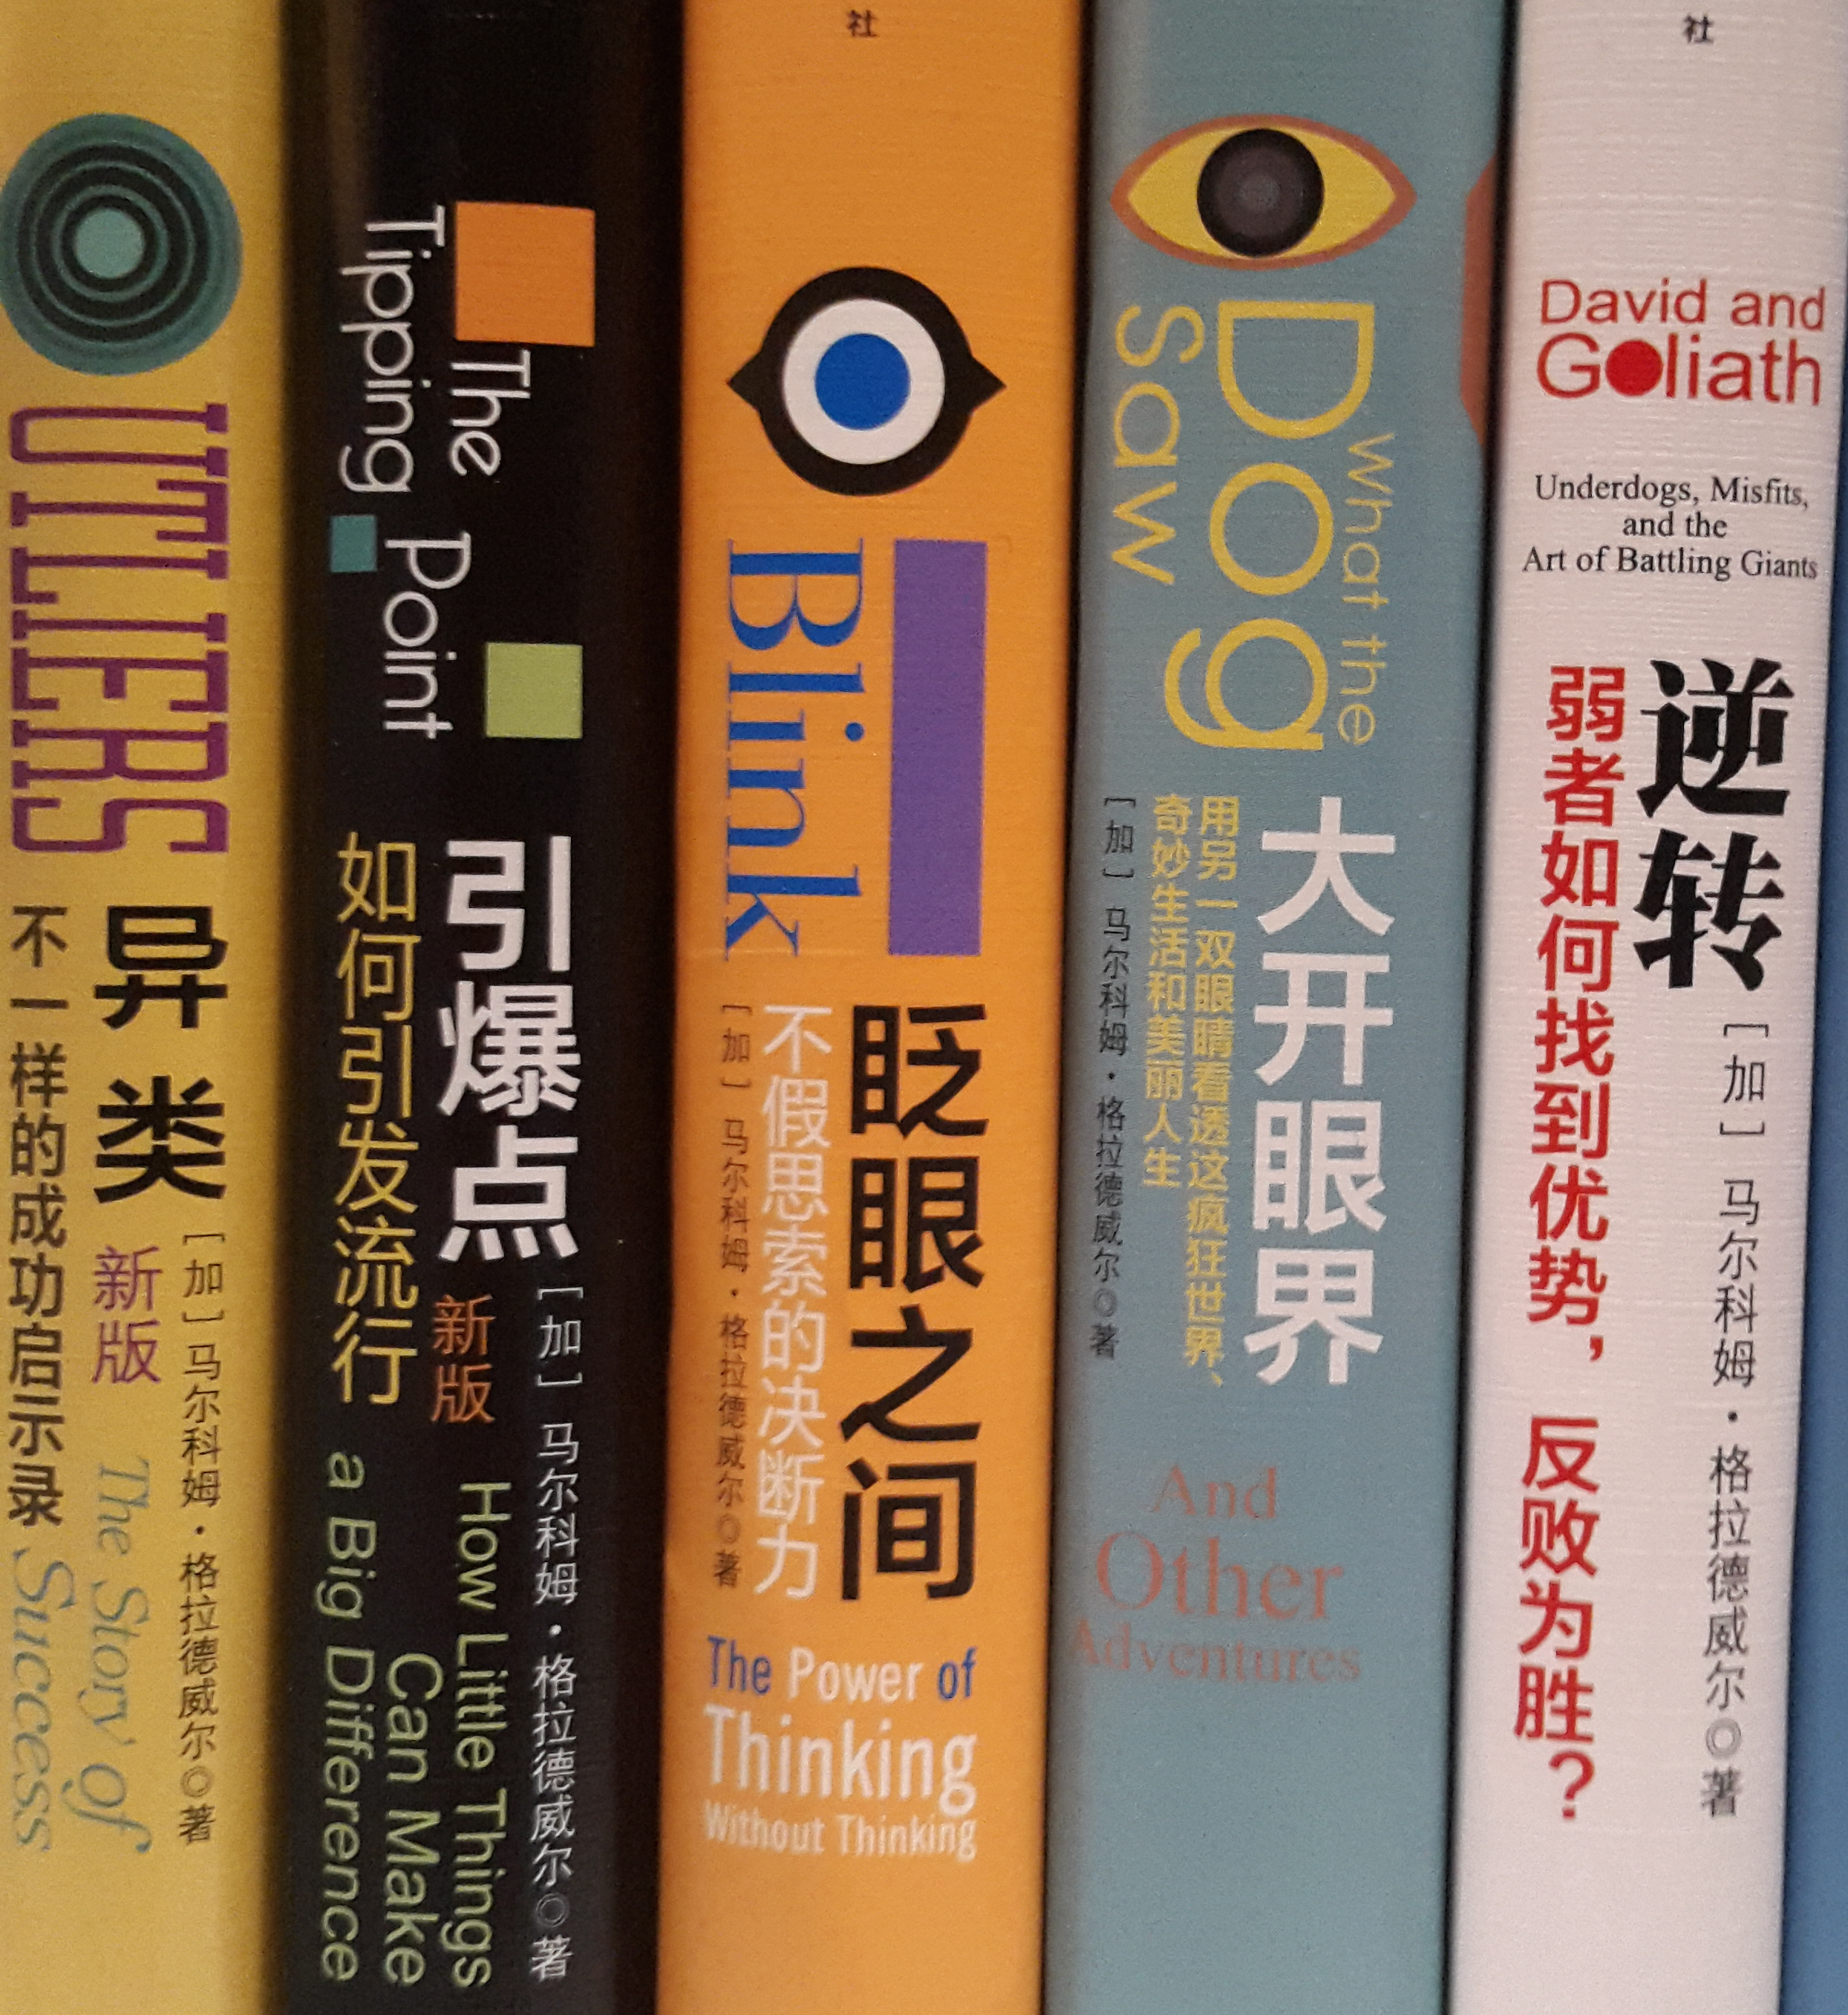 We have every Chinese translated version and I think every English version of his books!